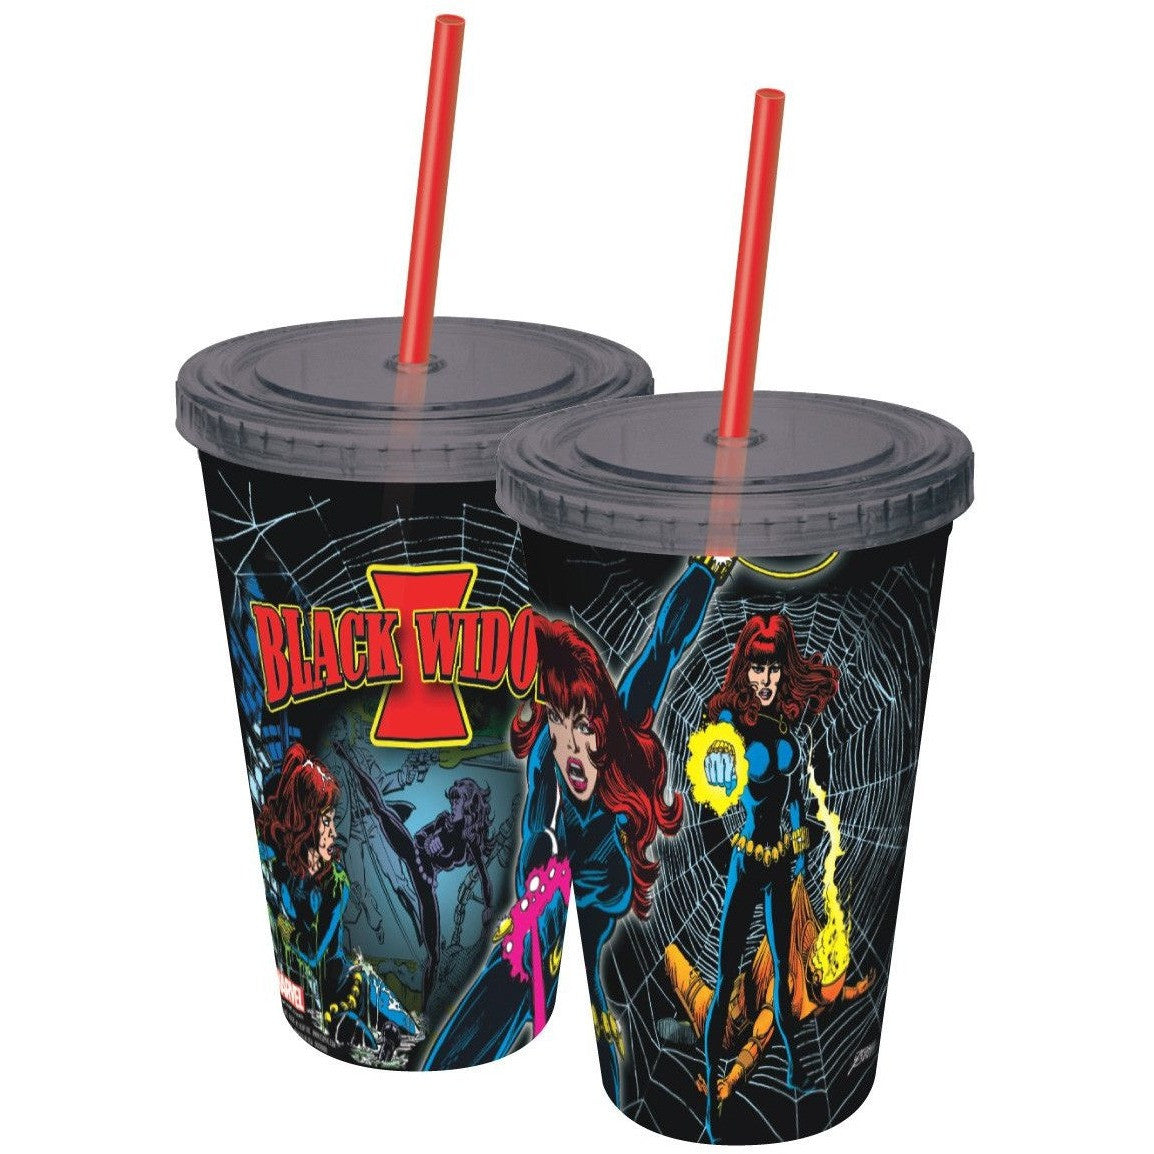 Classic Black Widow Plastic Travel Cup with Straw Uncanny!